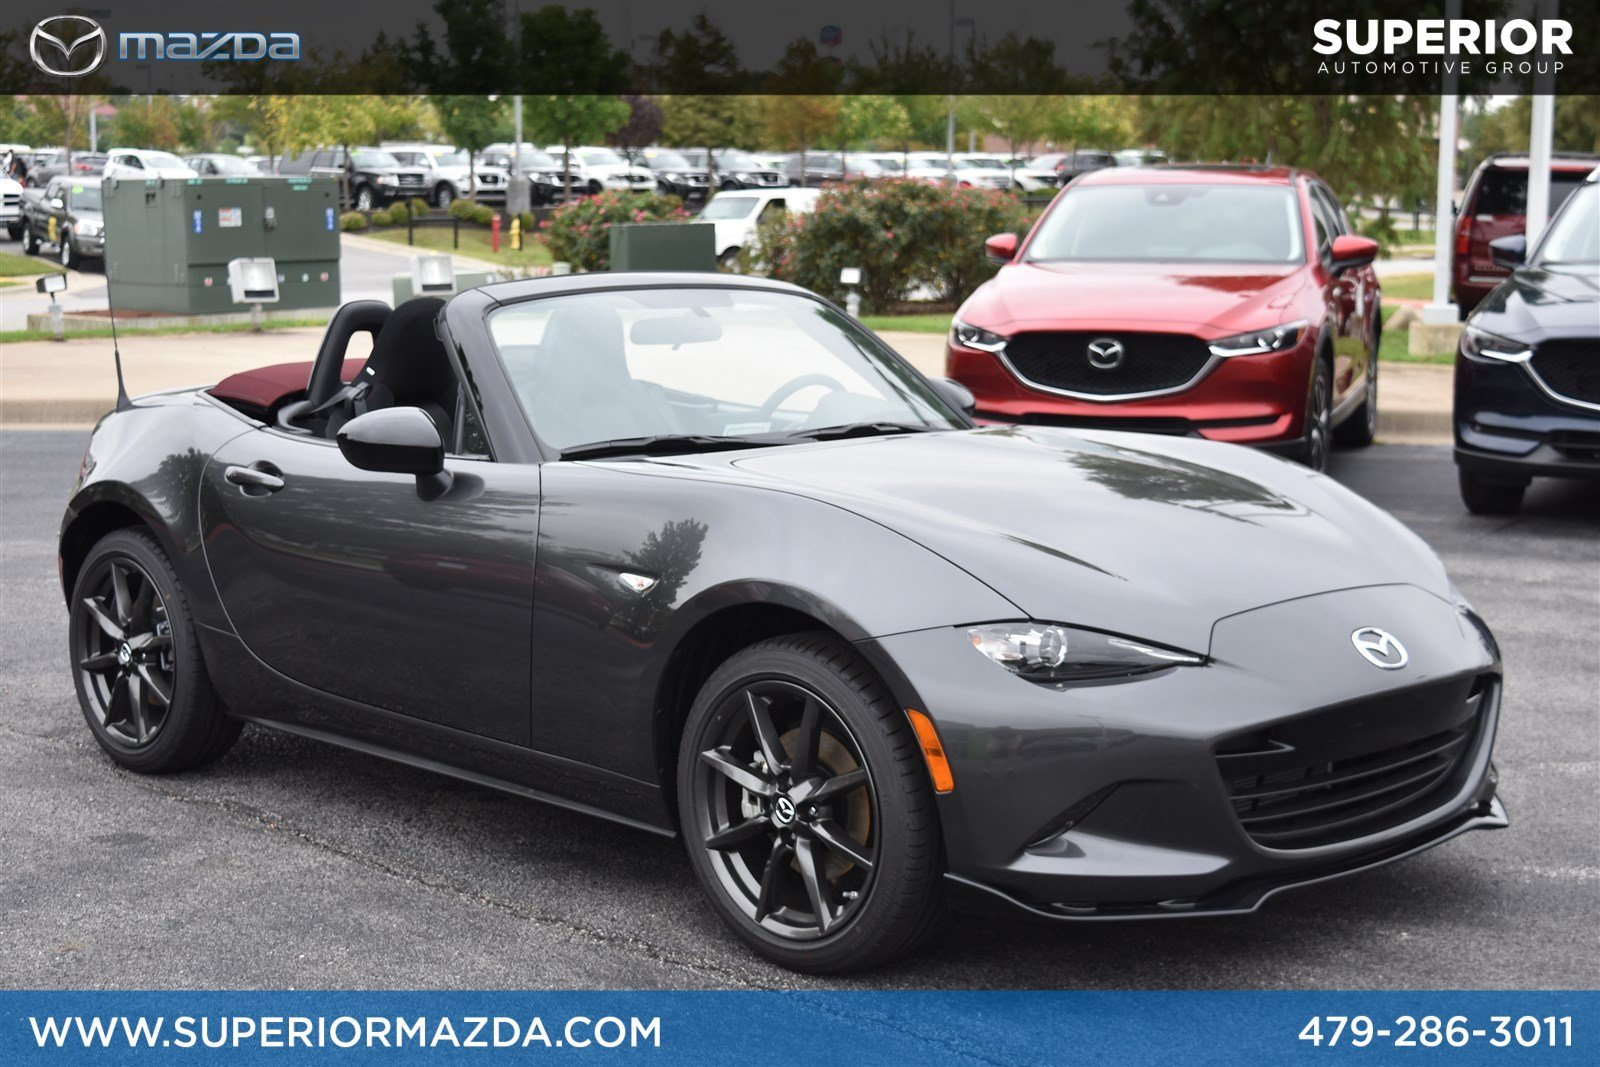 New 2018 Mazda Mx 5 Miata Club Convertible In Bentonville Z205897 Warn 6000 Wiring Diagram